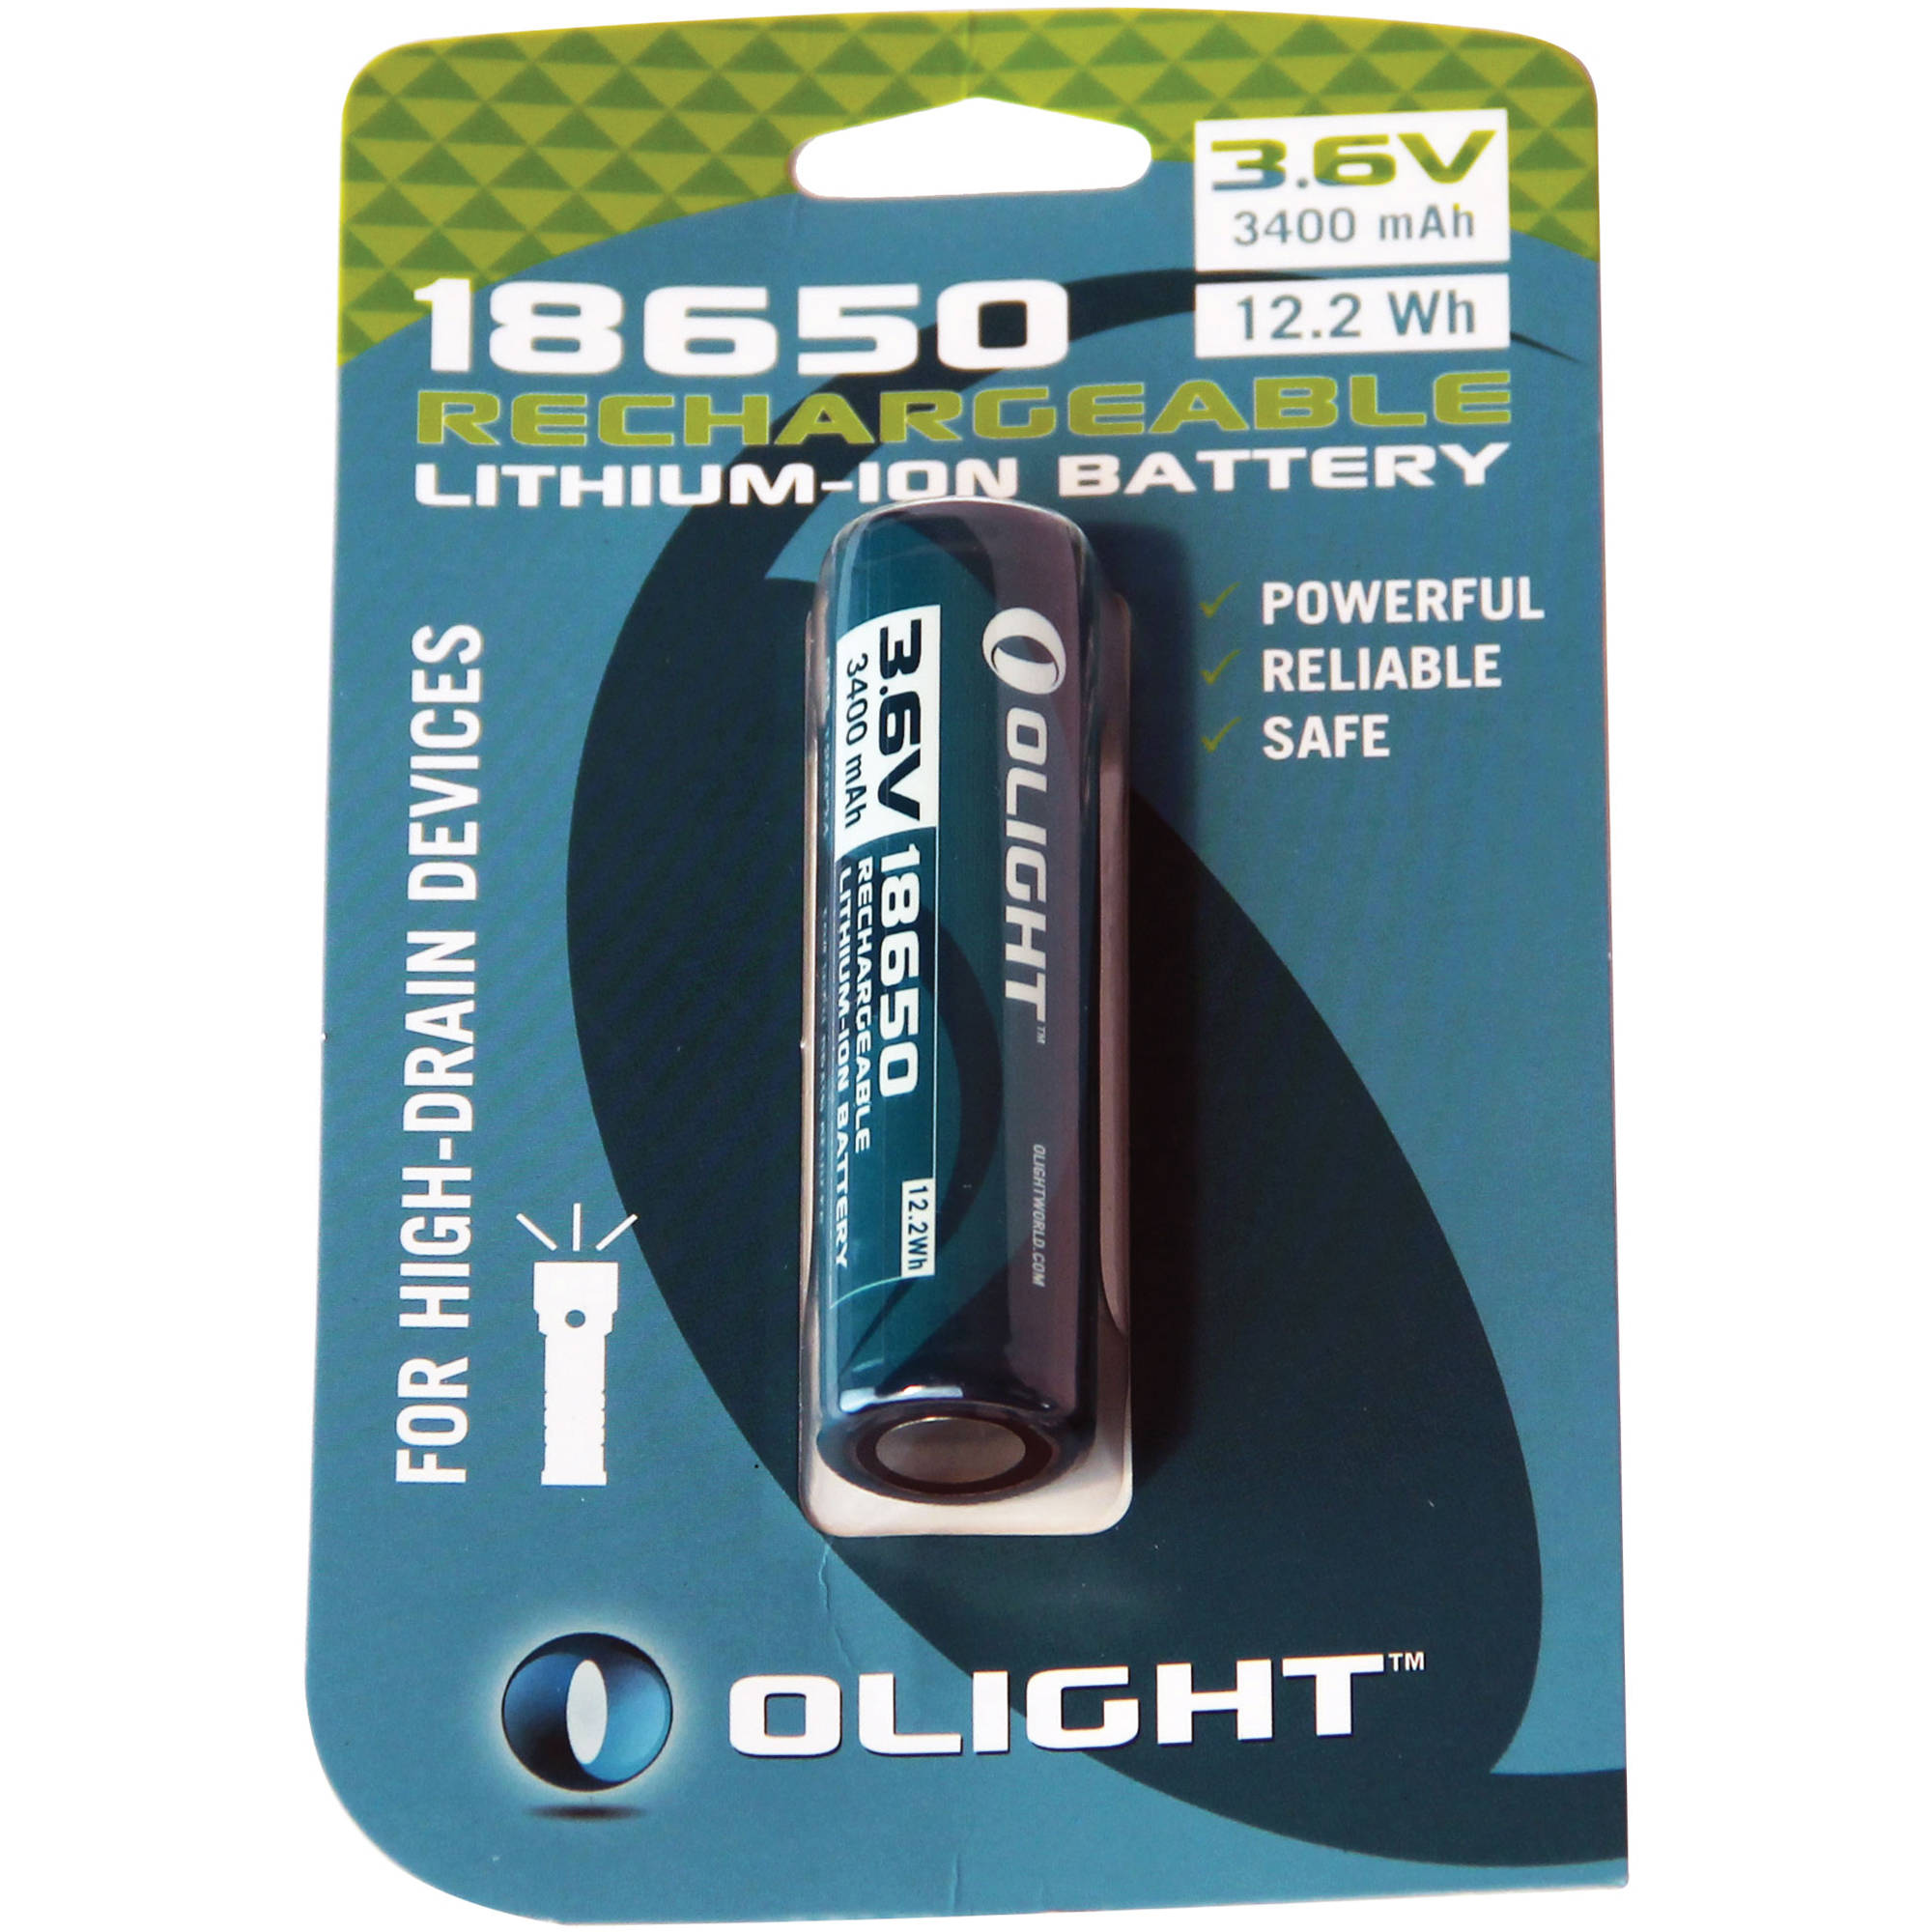 Olight 18650 Rechargeable Lithium Ion Battery 18650 3400mah Card